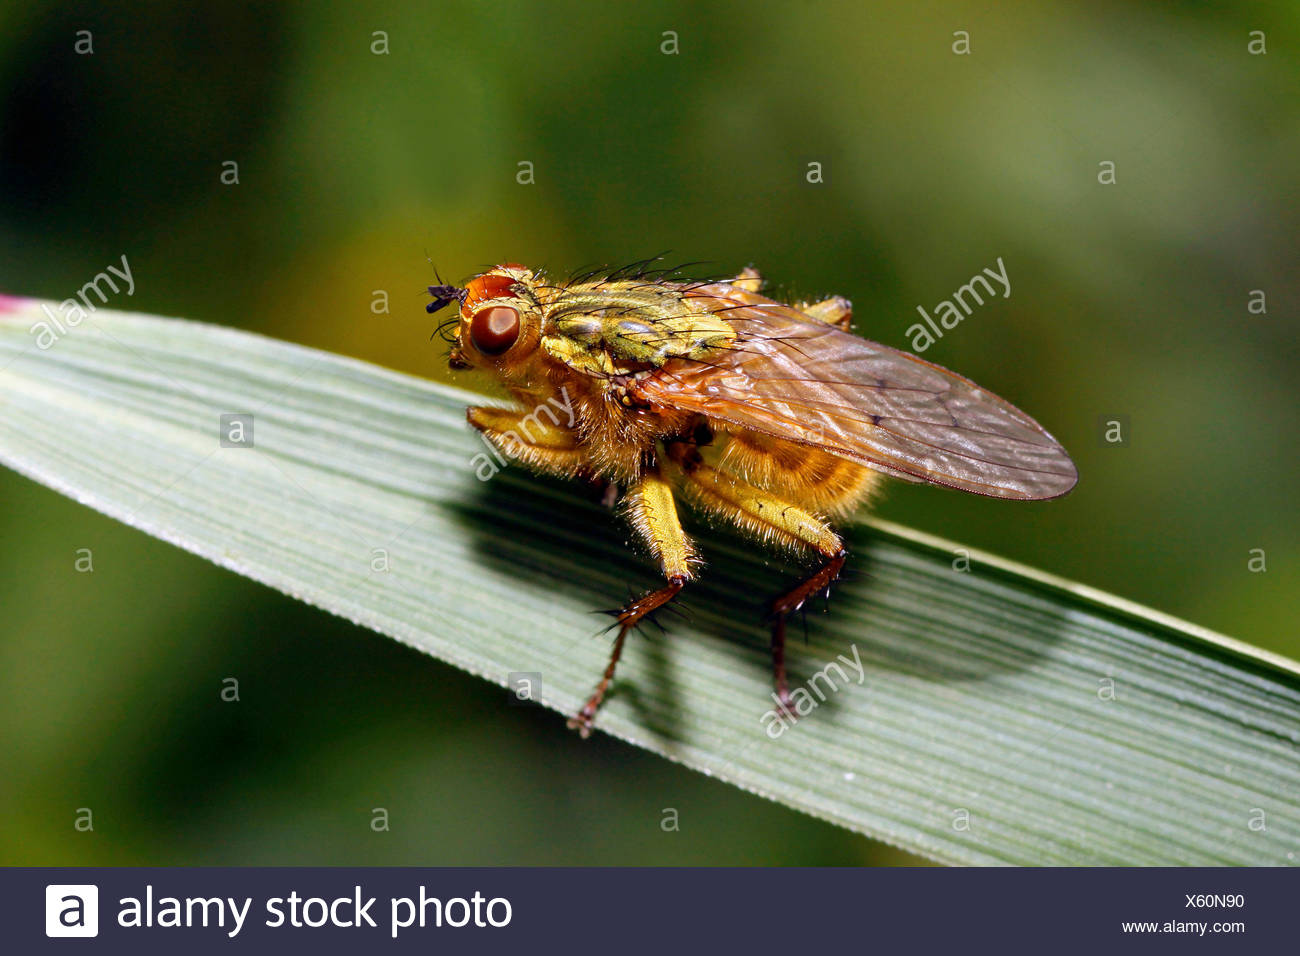 Yellow dungfly, Yellow dung fly, Golden dung fly (Scathophaga stercoraria), sitting on a leaf, Germany - Stock Image